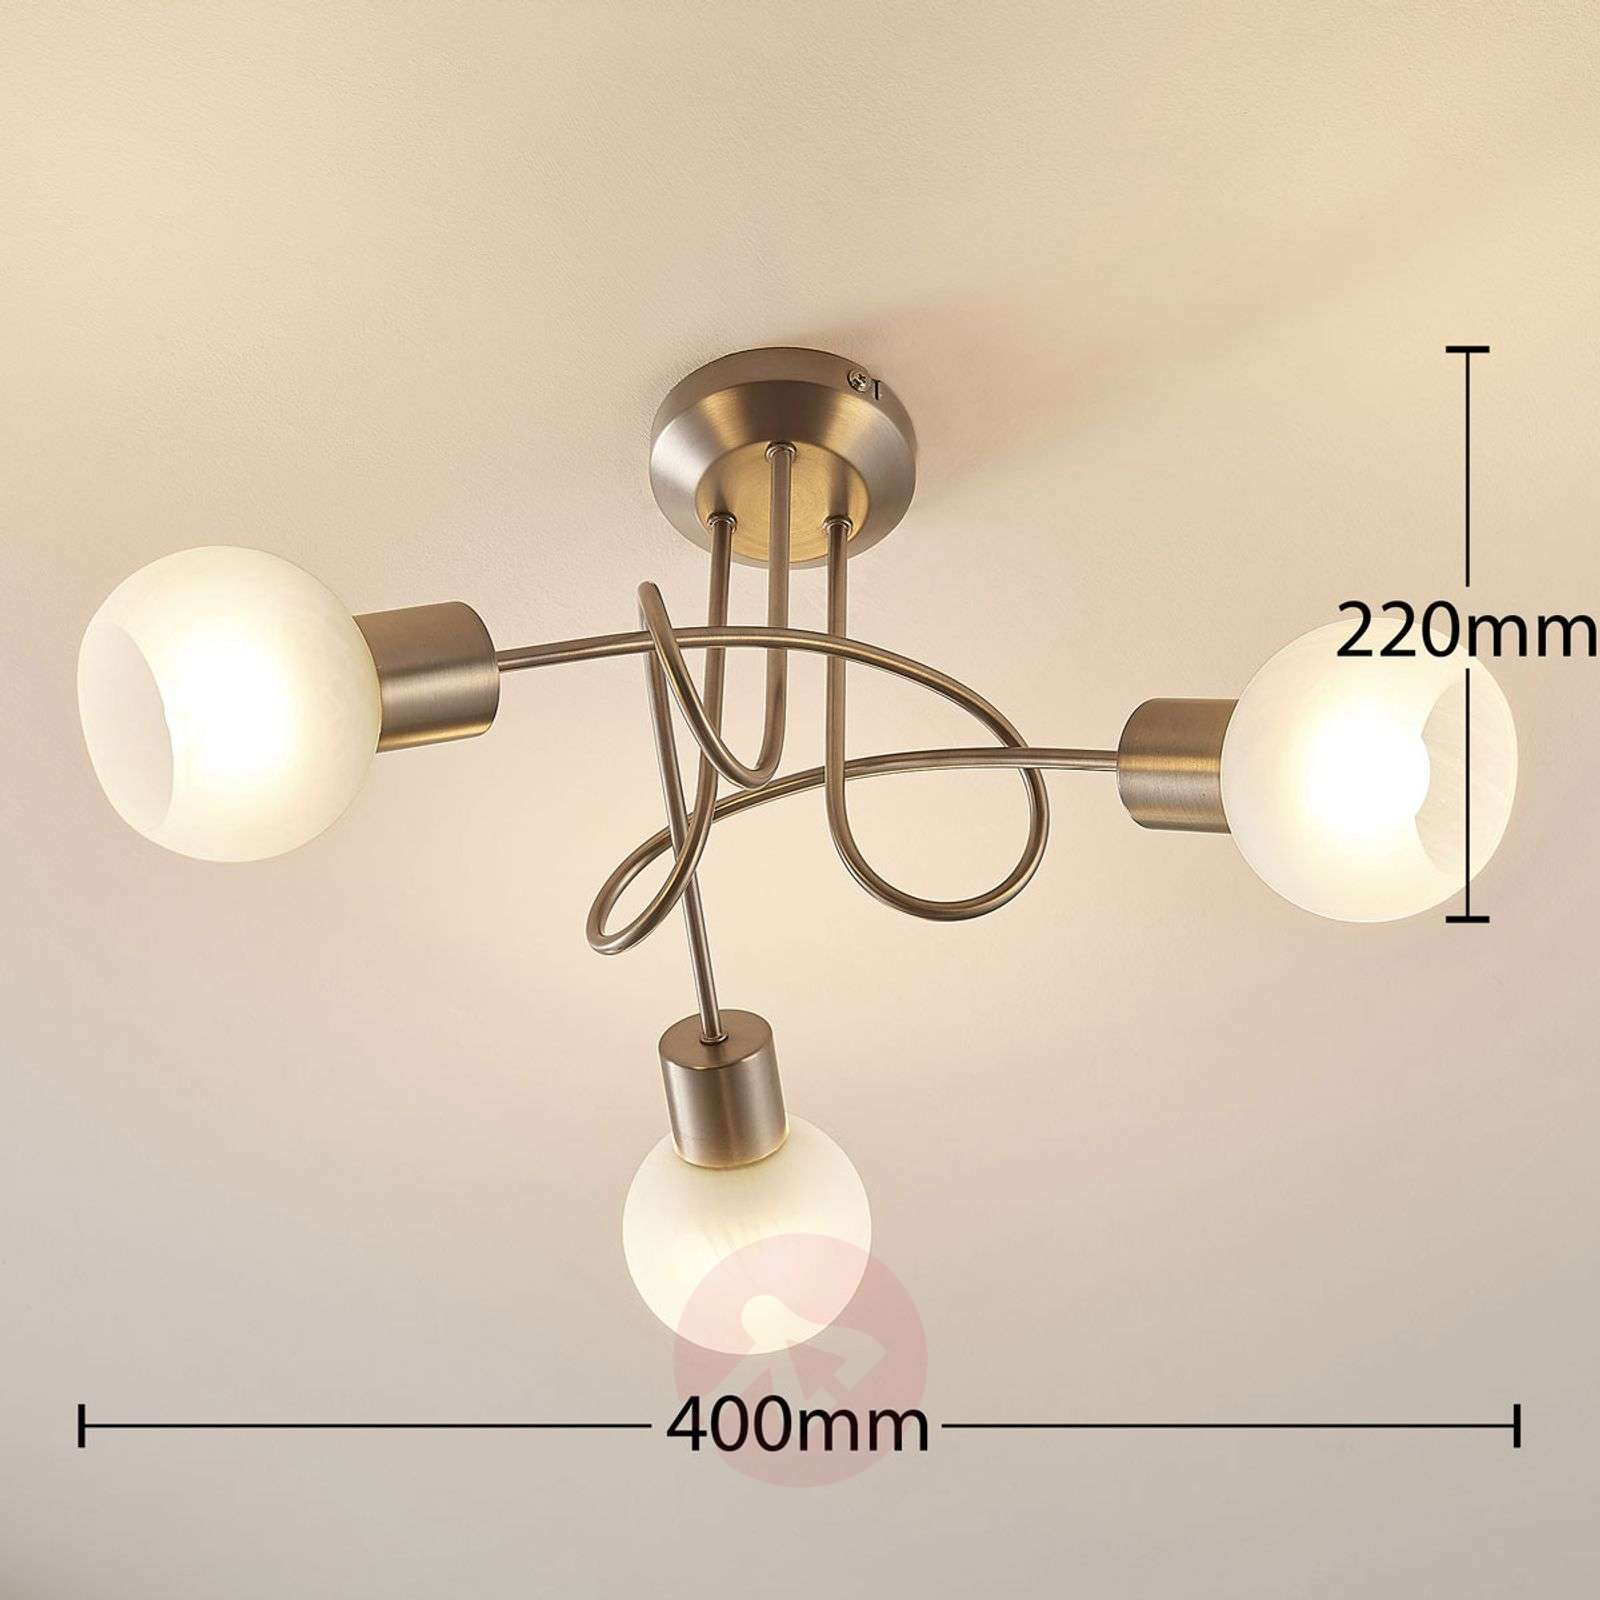 Tanos LED ceiling lamp with 3 Easydim bulbs-9621566-02